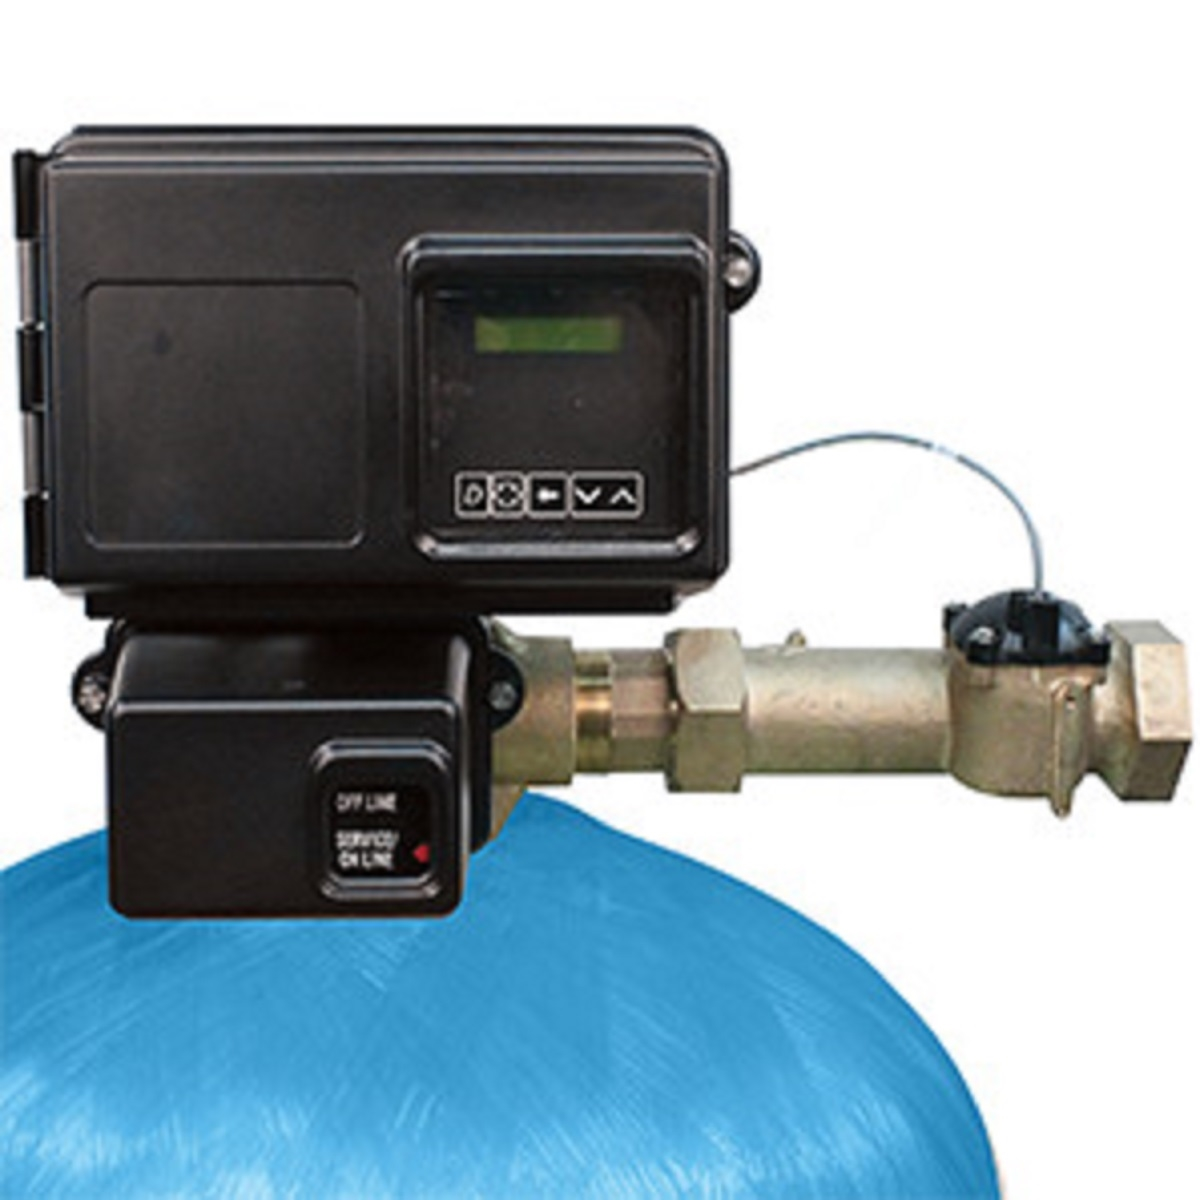 Fleck 2900 2 Quot Electronic Valve With 4c Injector